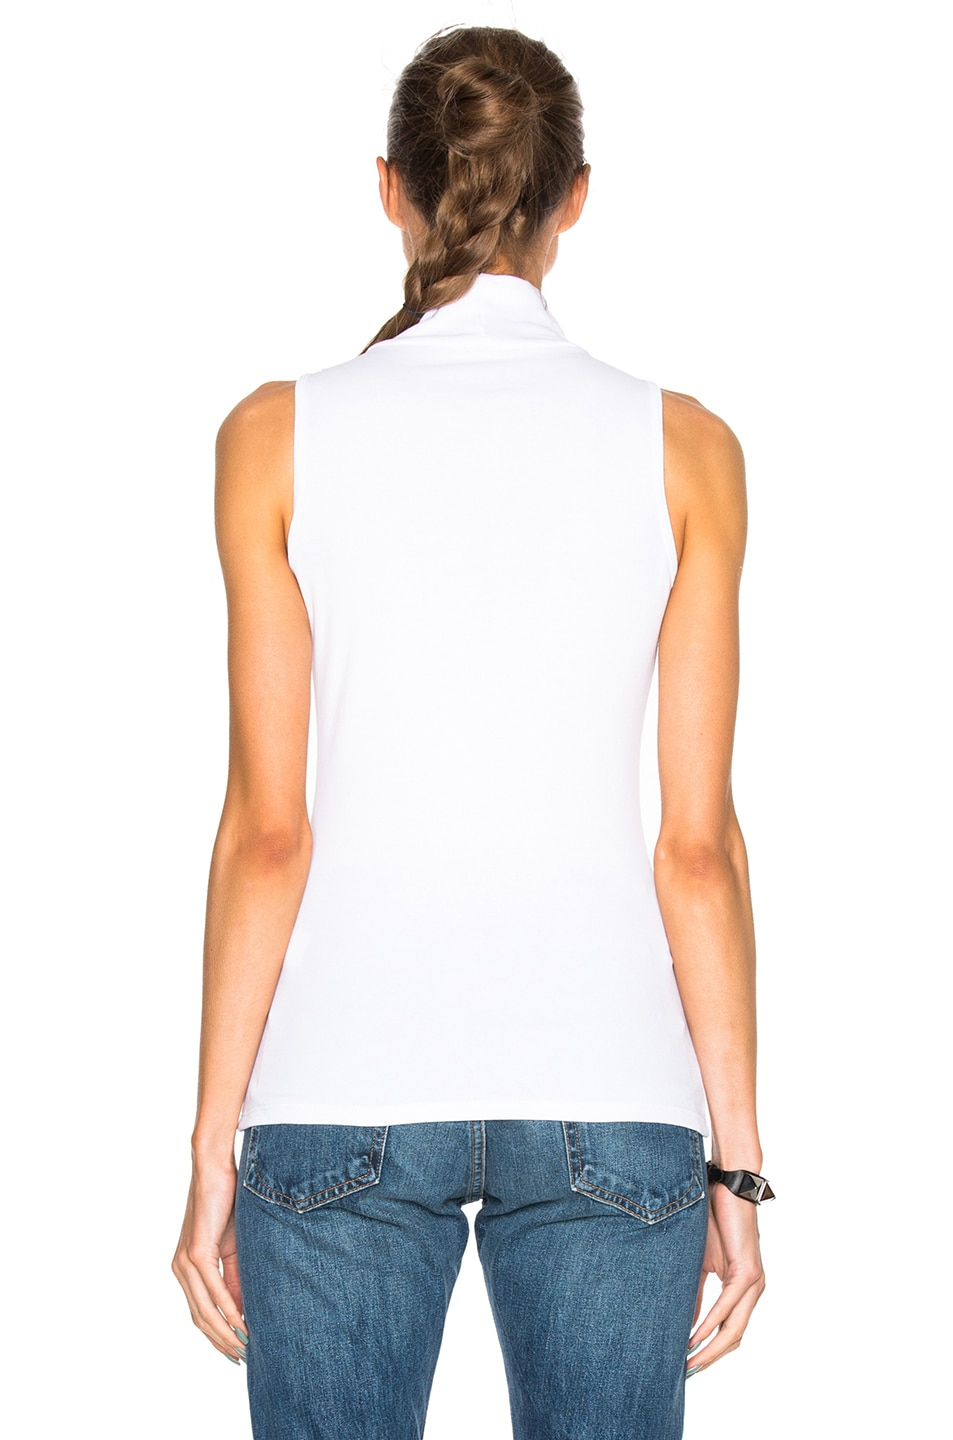 Shop for sleeveless turtleneck neck online at Target. Free shipping on purchases over $35 and save 5% every day with your Target REDcard.